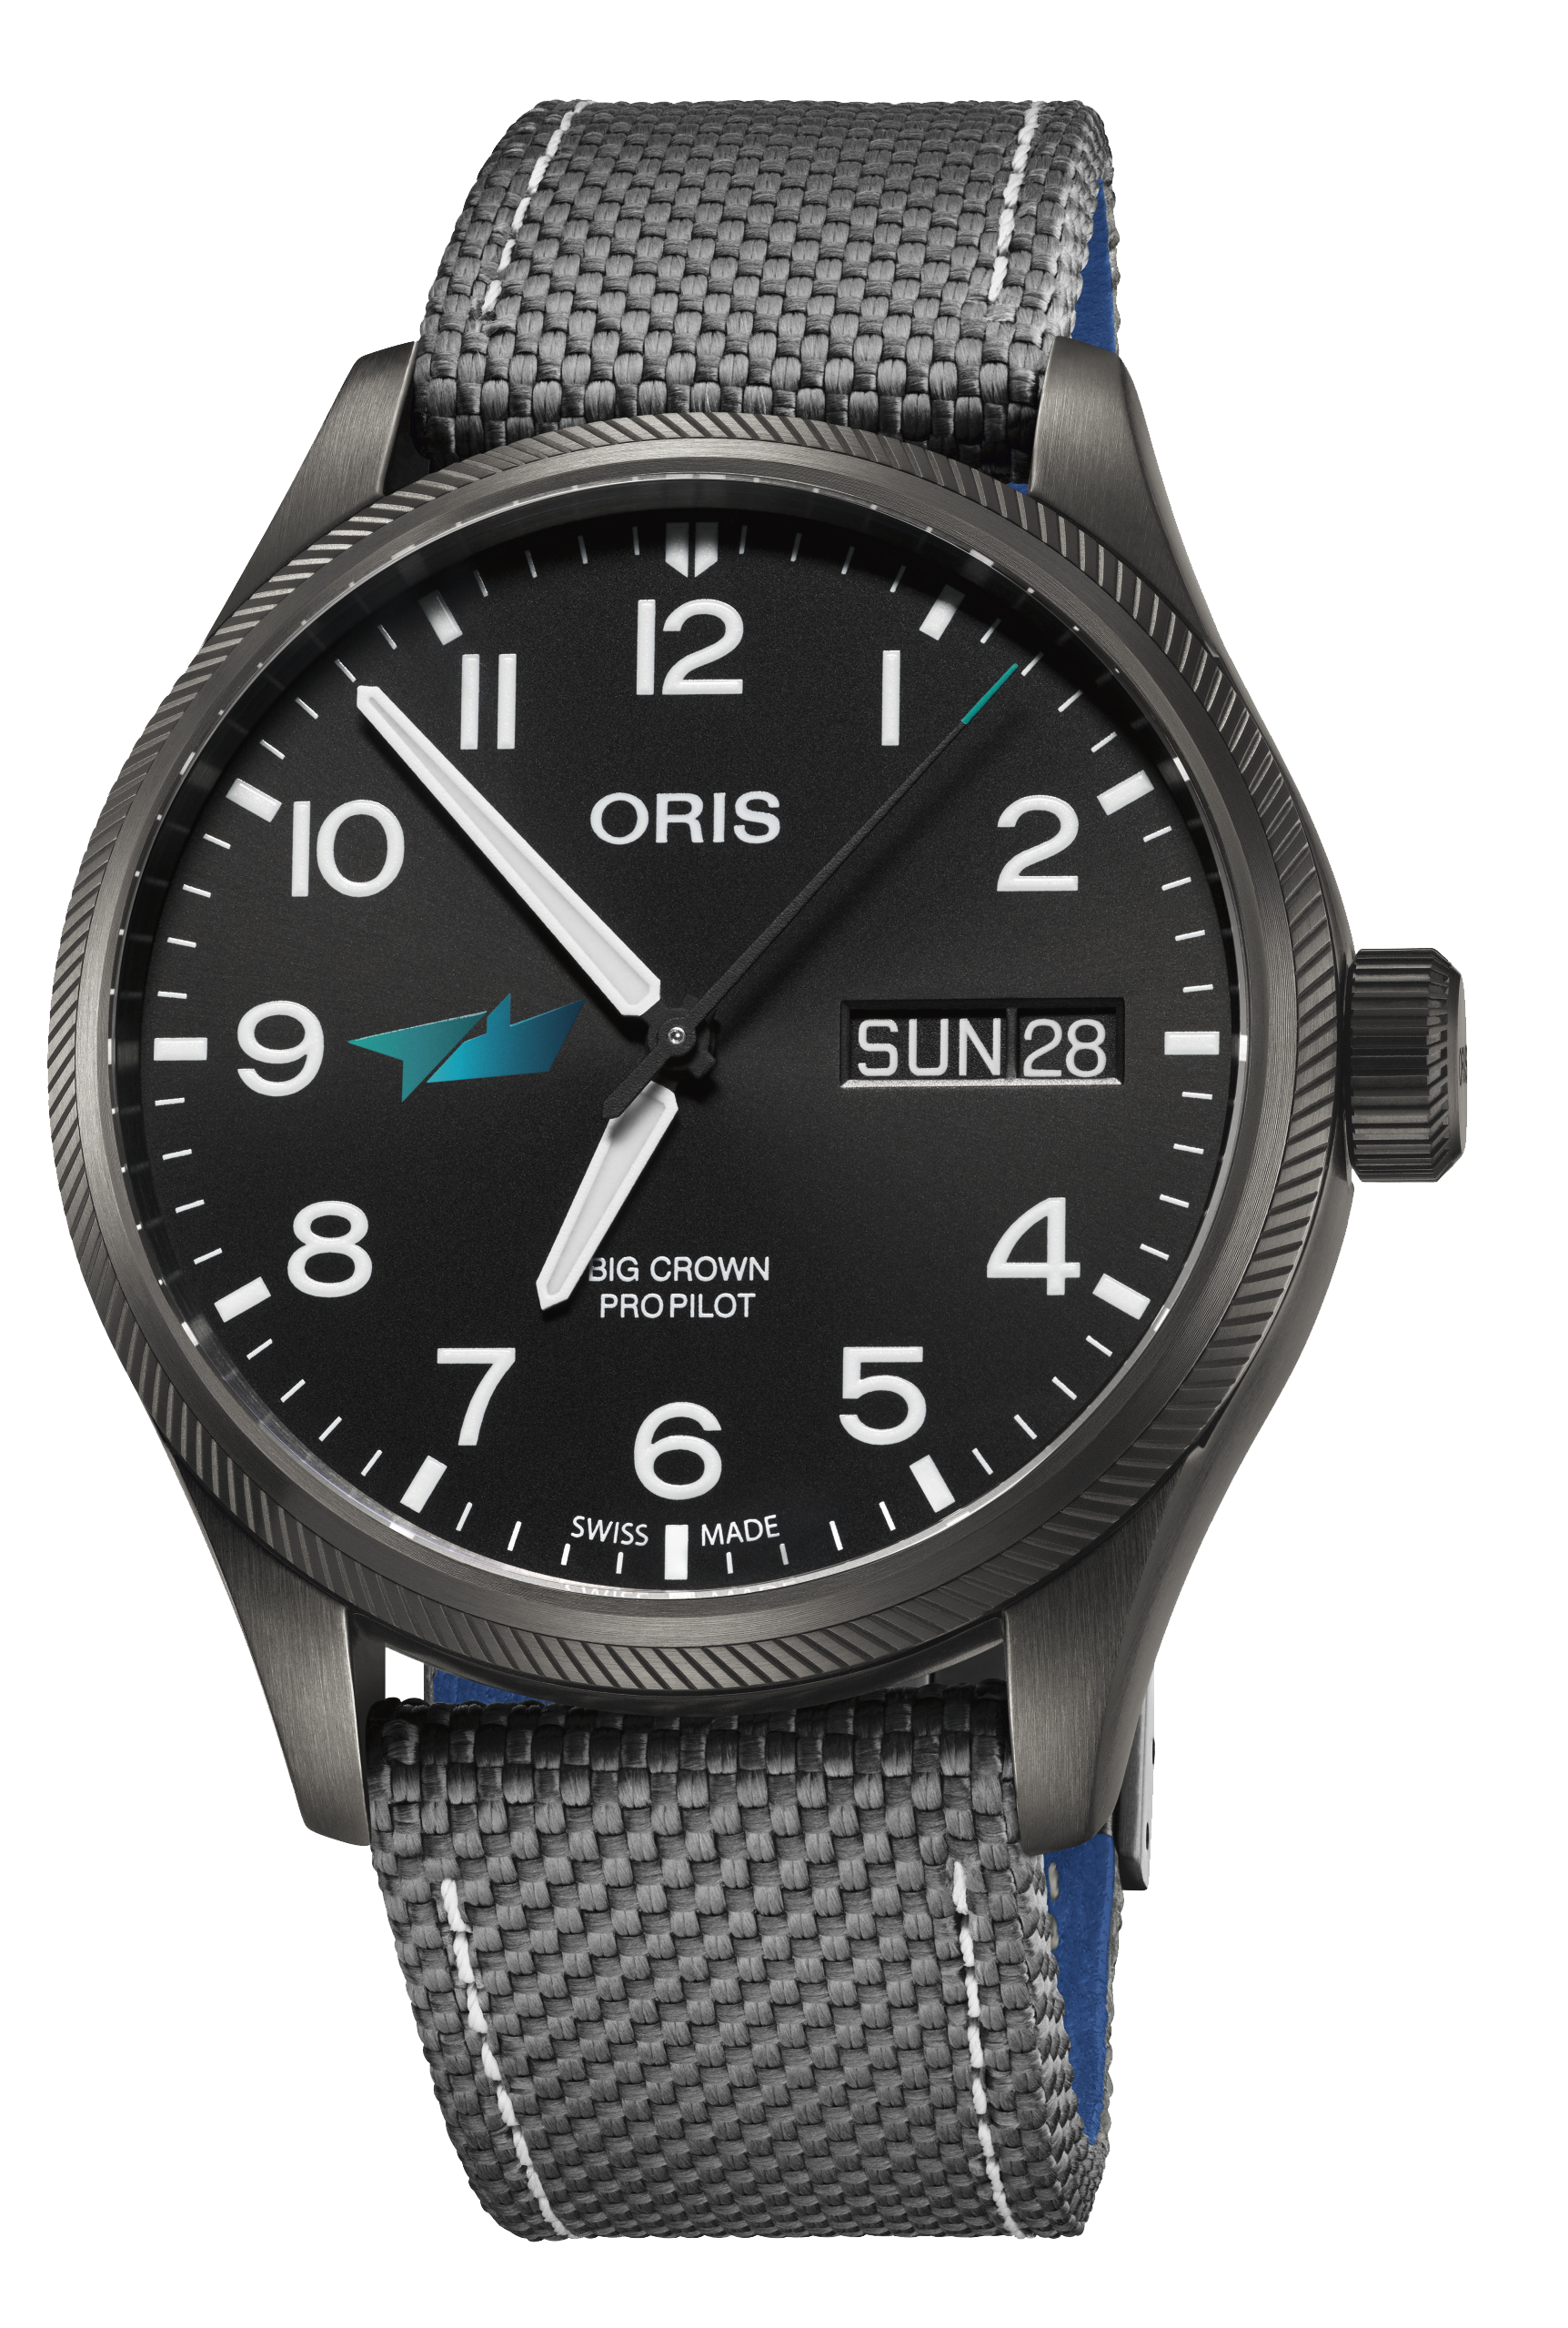 01 752 7698 4224-07 3 22 01GFC - Oris LIMA Limited Edition_HighRes_9472.png